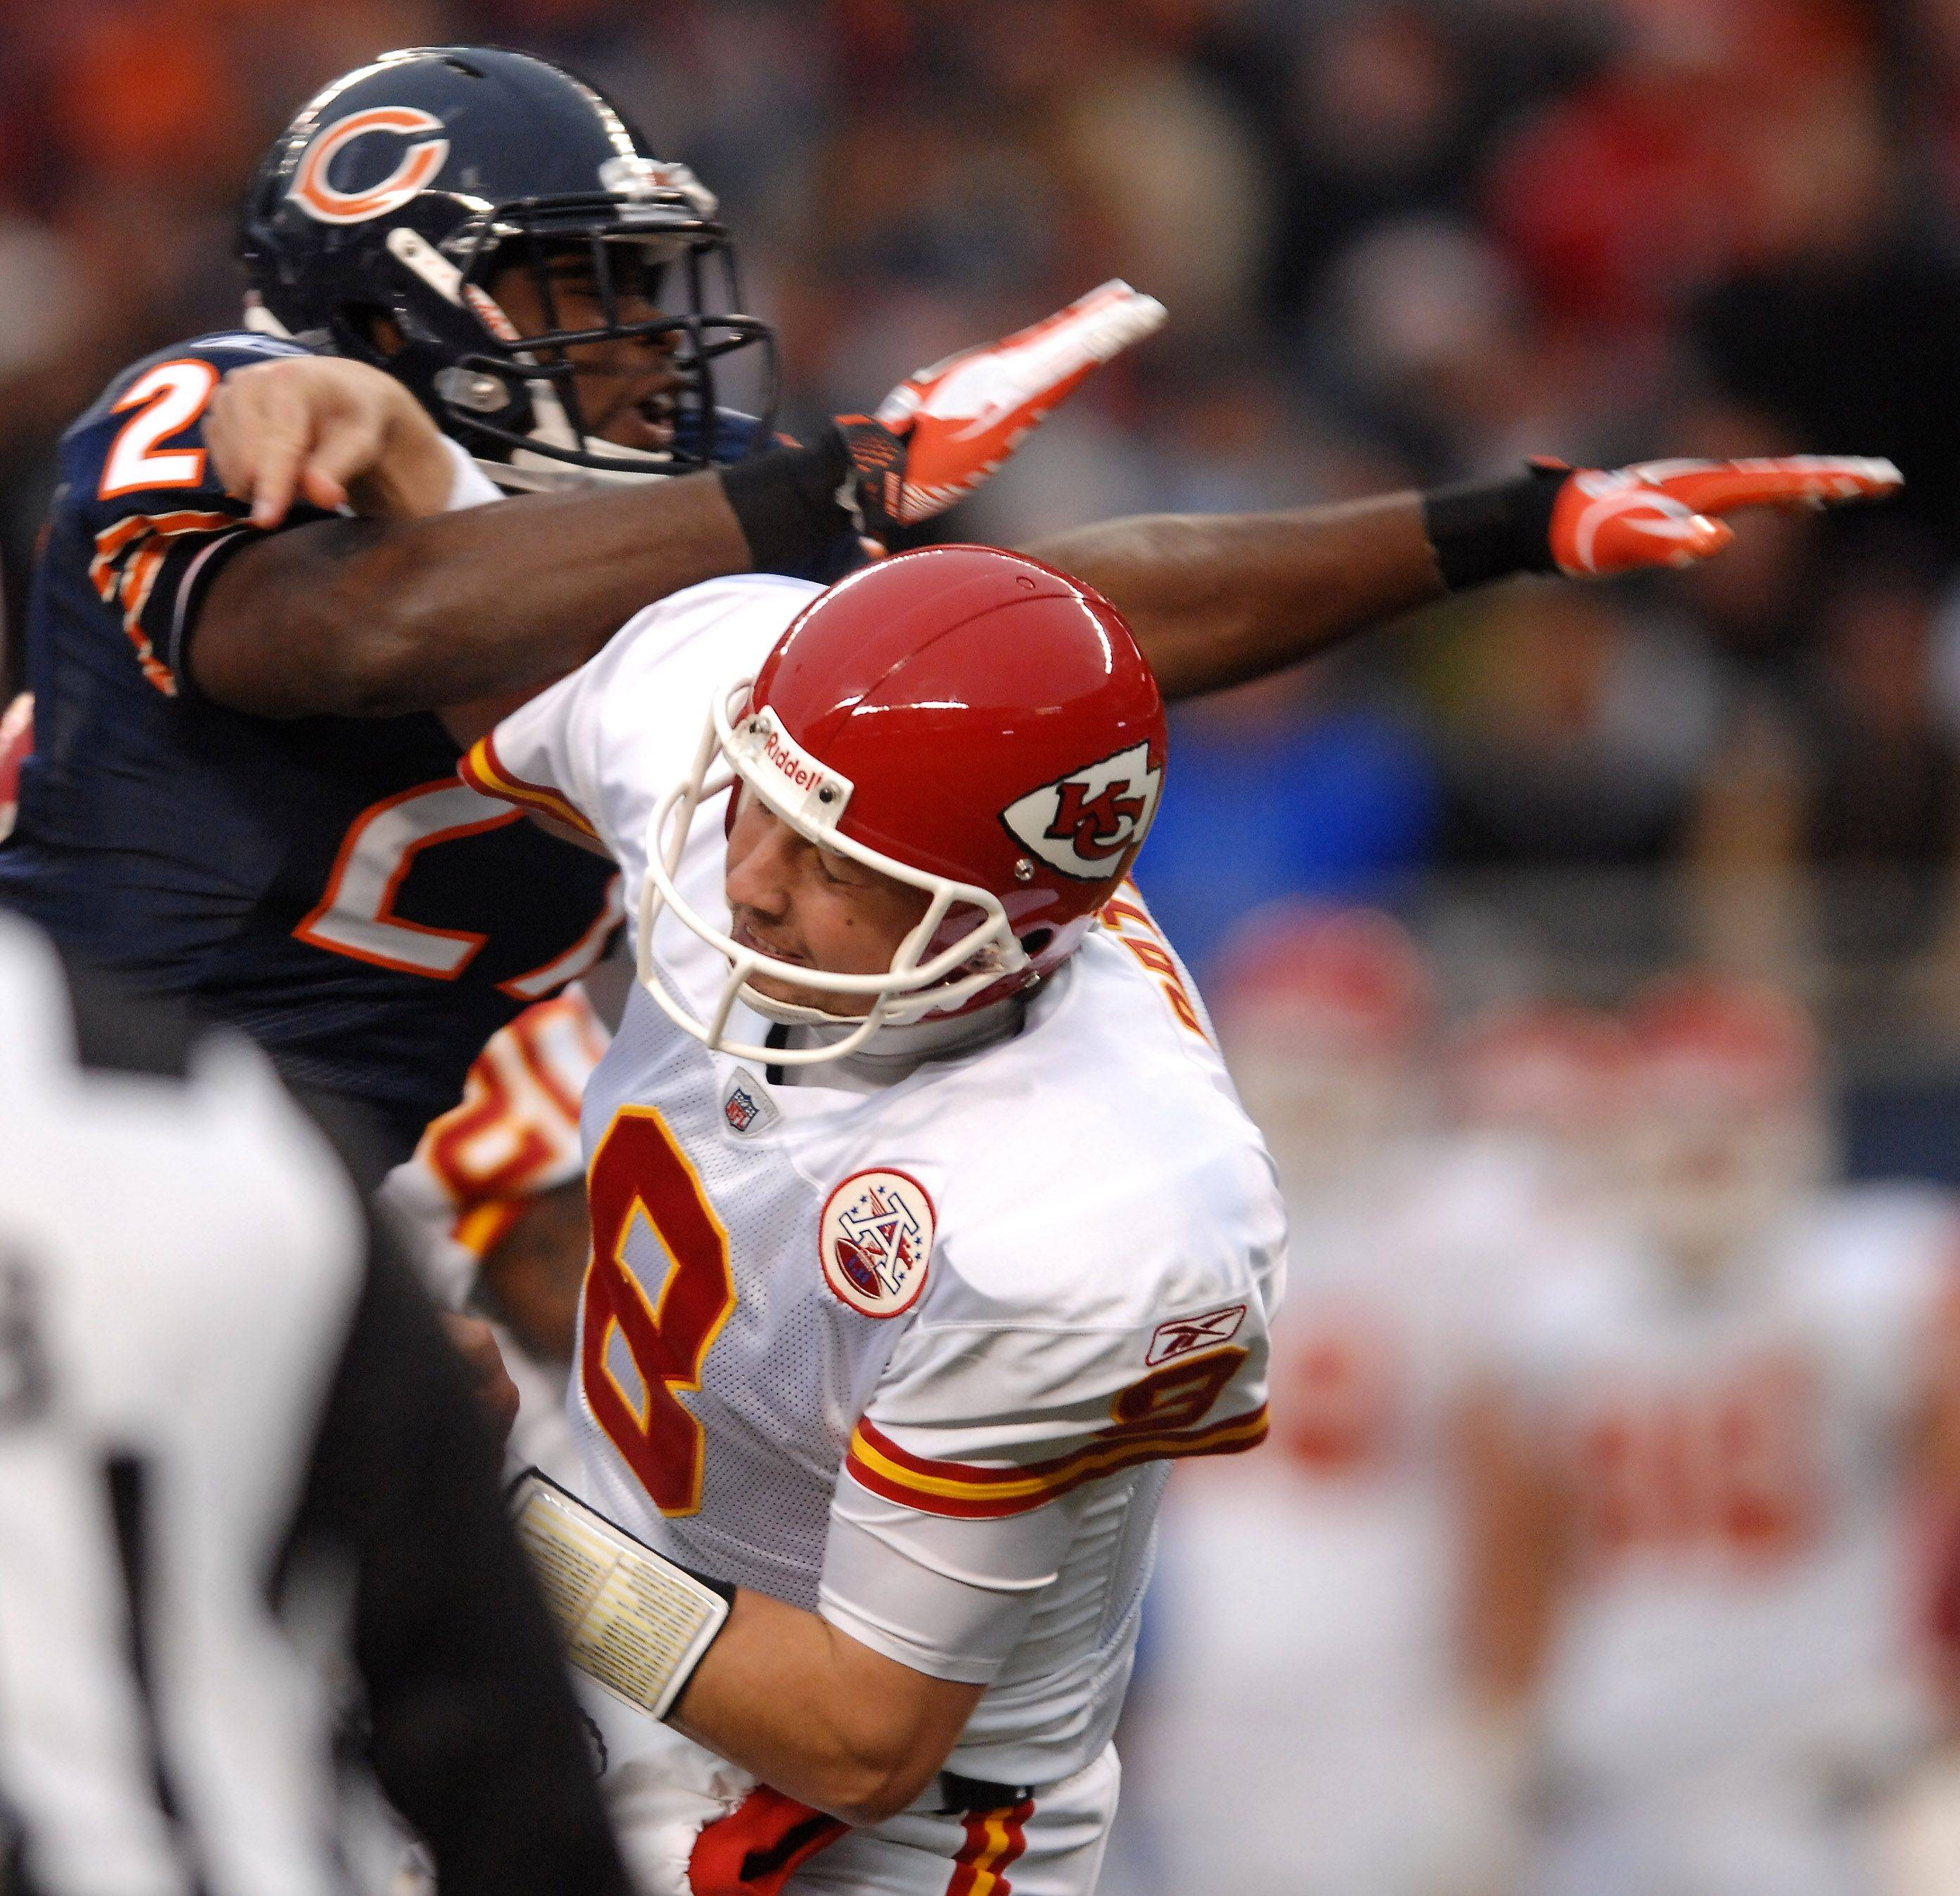 Chiefs quarterback Kyle Orton gets hit by Bears safety Major Wright on Orton's only play in Sunday's game.